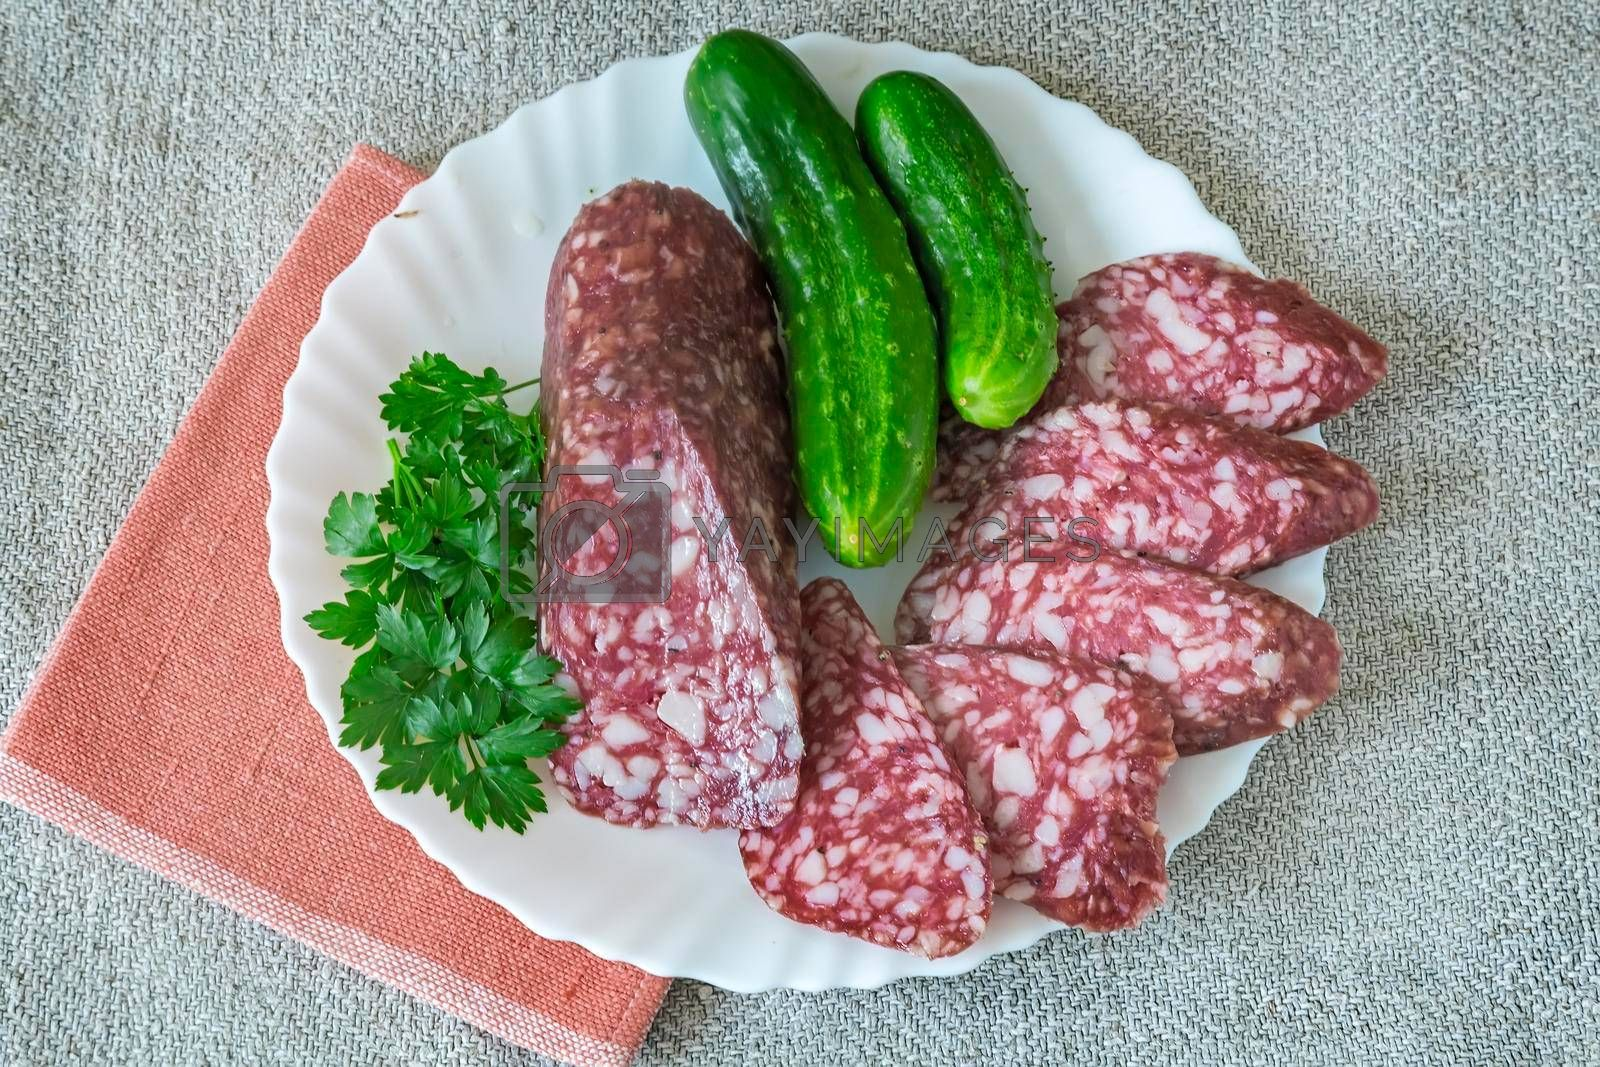 Royalty free image of Slices of sausage and cucumber on the plate. by georgina198